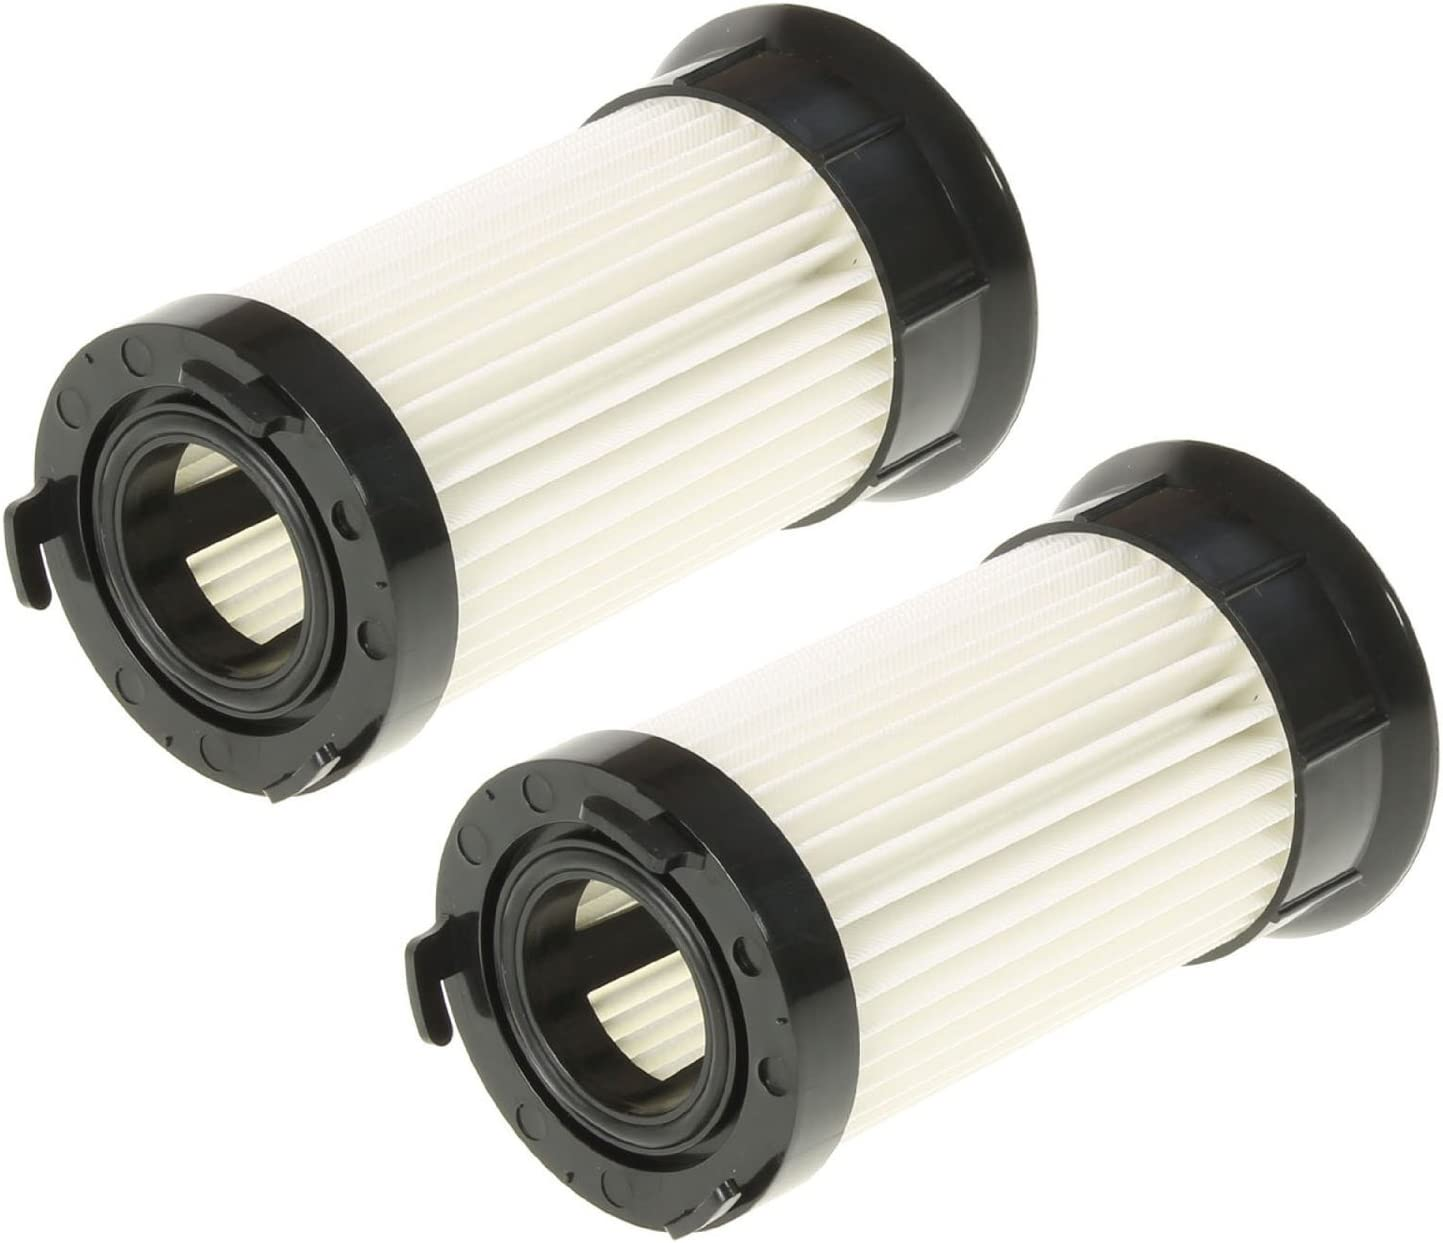 Spares2go Pleated Cartridge Filters for Electrolux Vacuum Cleaners (Pack of 2)